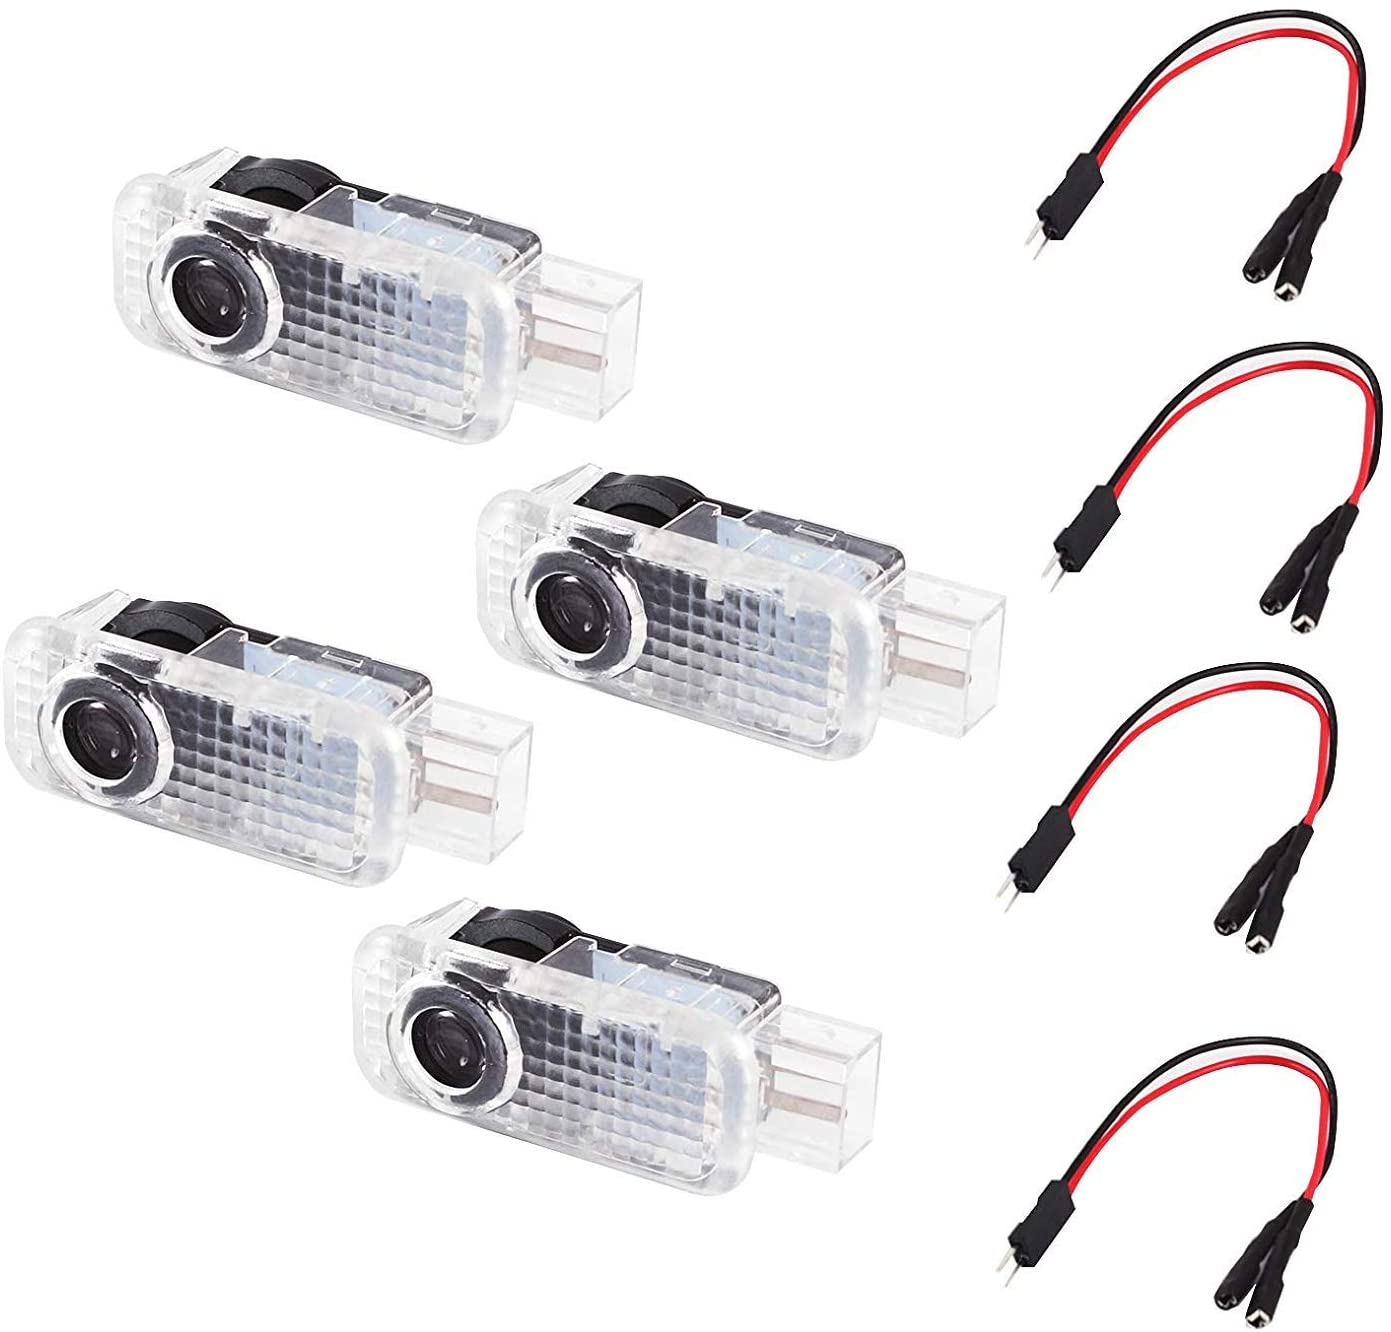 Car Door LED Lighting Entry Ghost Shadow Projector Welcome